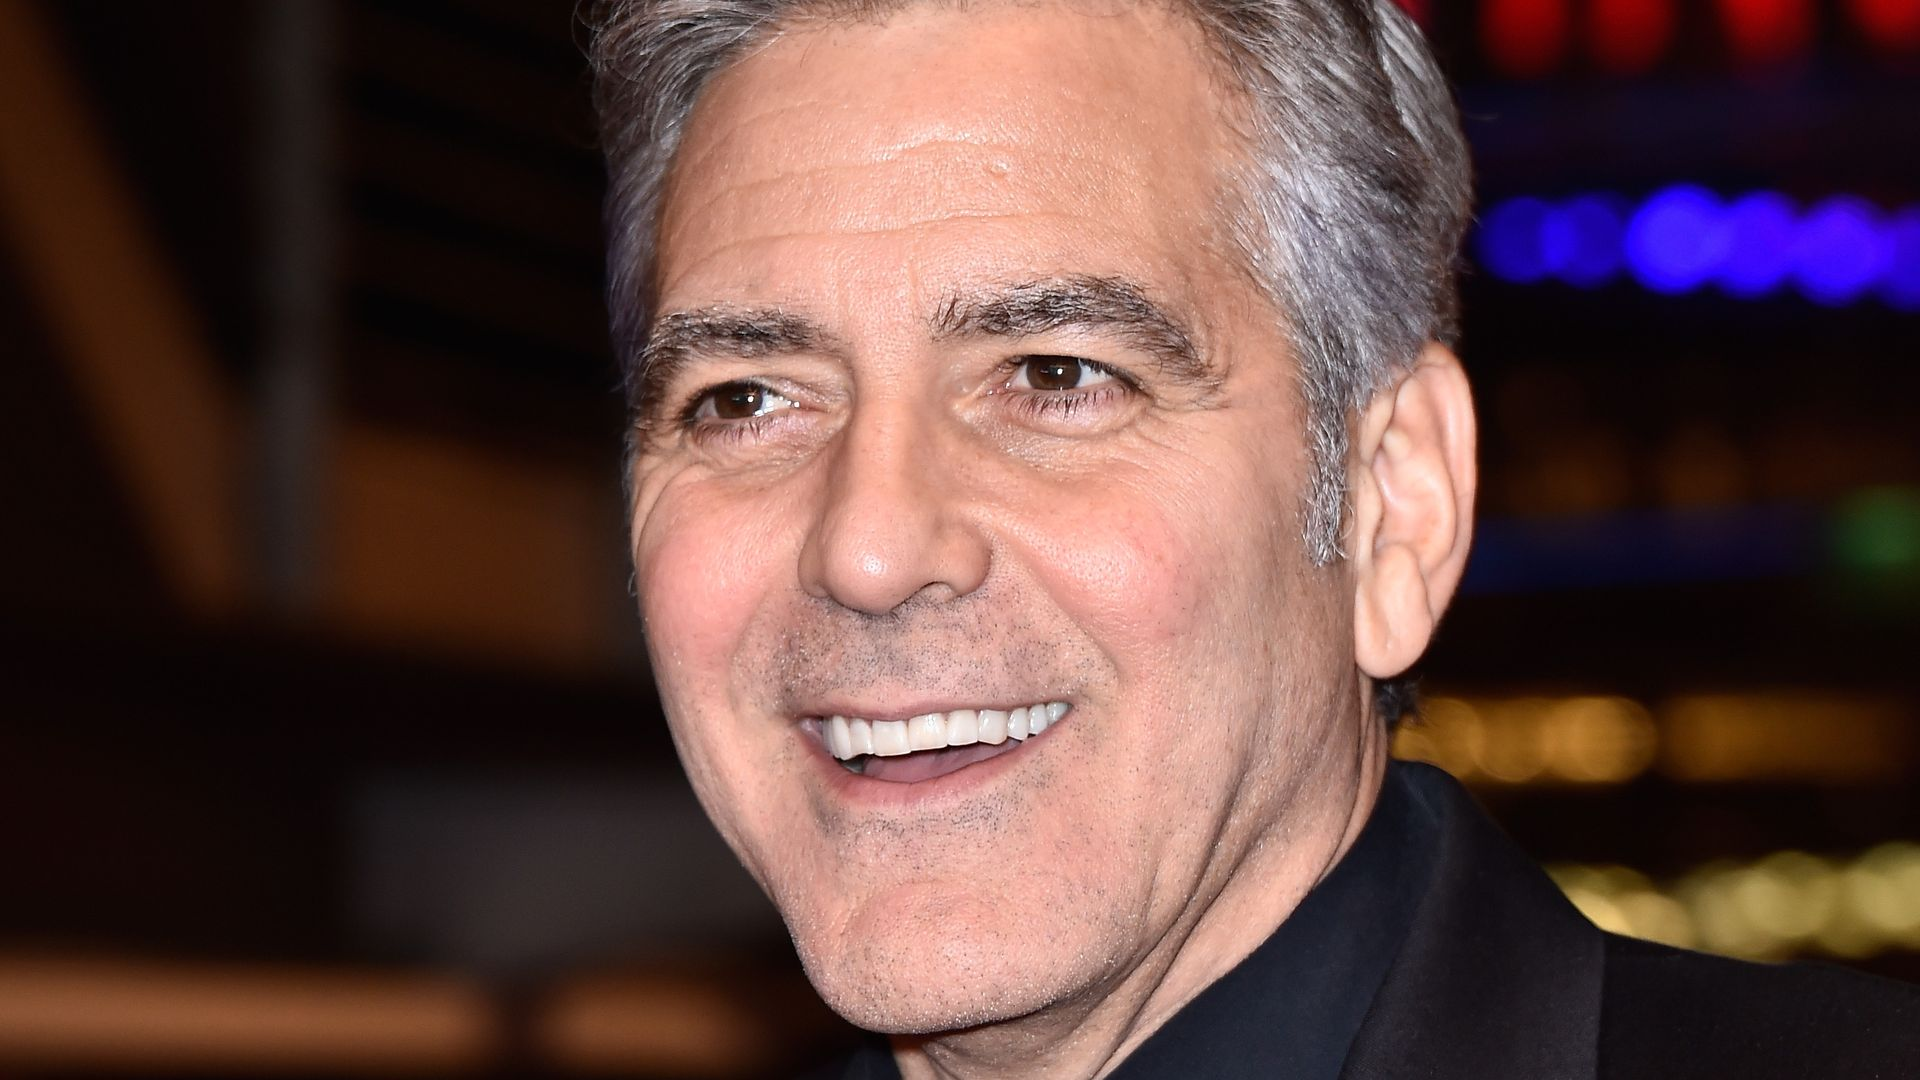 botox konter george clooney steht auf seine falten. Black Bedroom Furniture Sets. Home Design Ideas